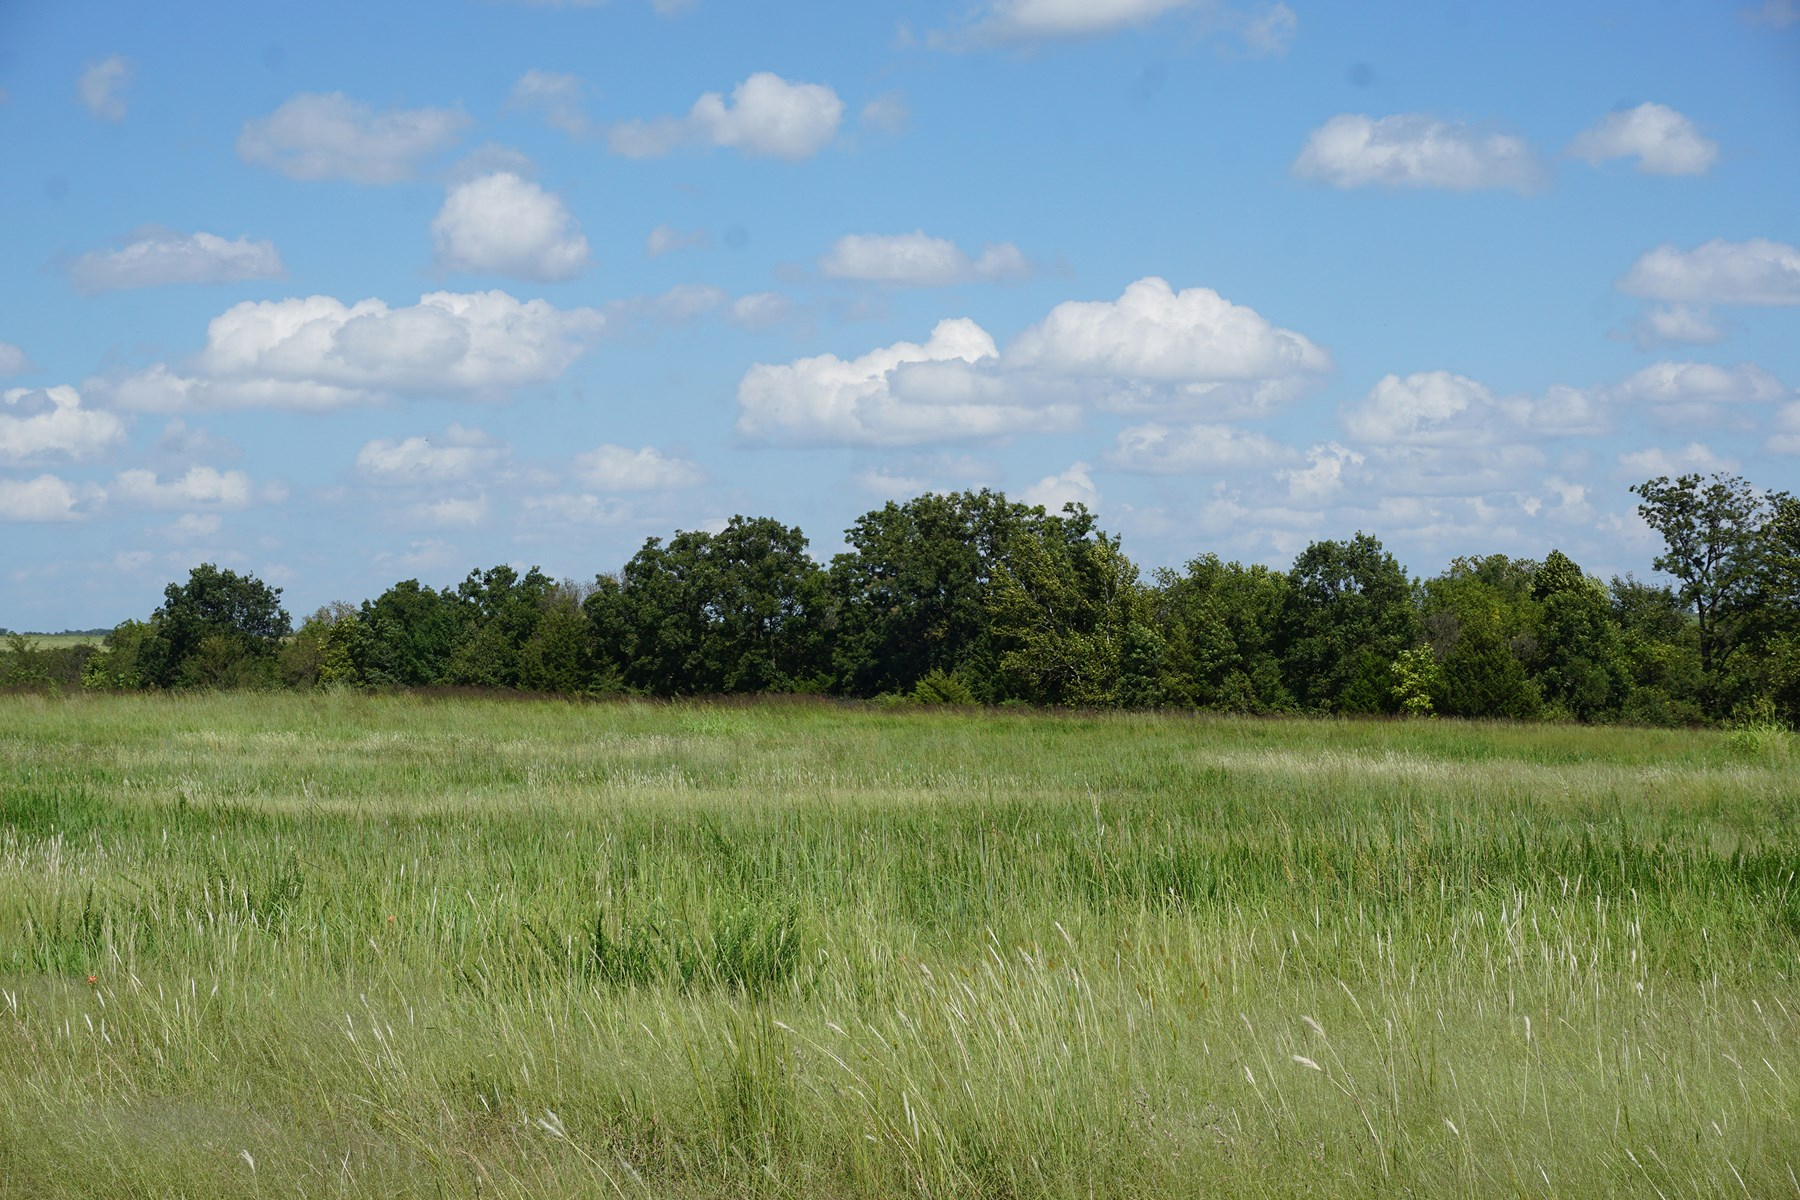 No Reserve Auction, Cushing, OK 160 Ac +/- Sat., Oct 12 @ 12:30 p.m.